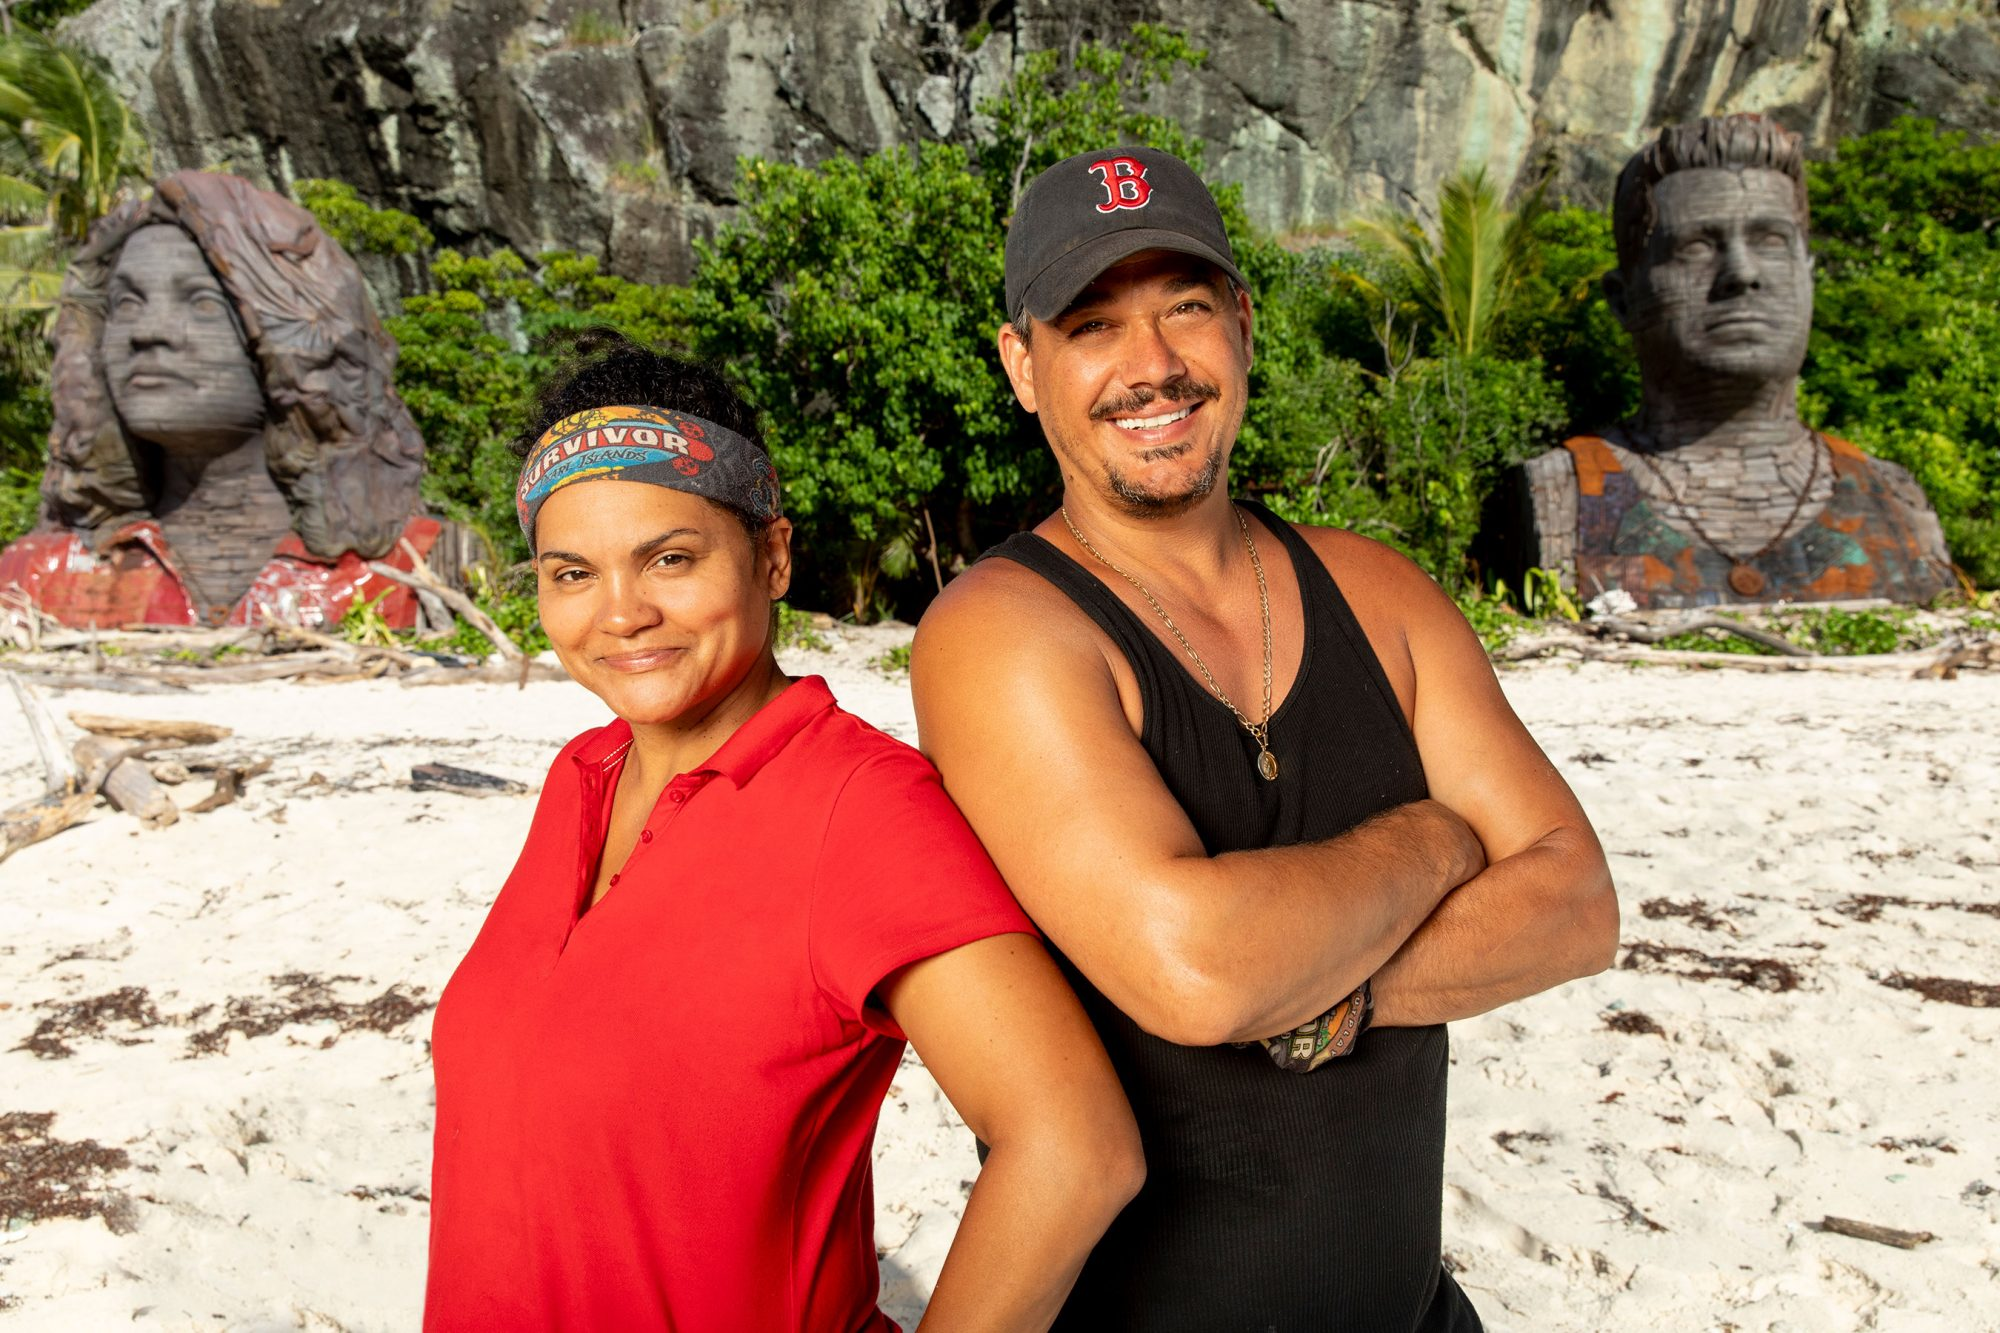 SURVIVOR: Island of the Idols